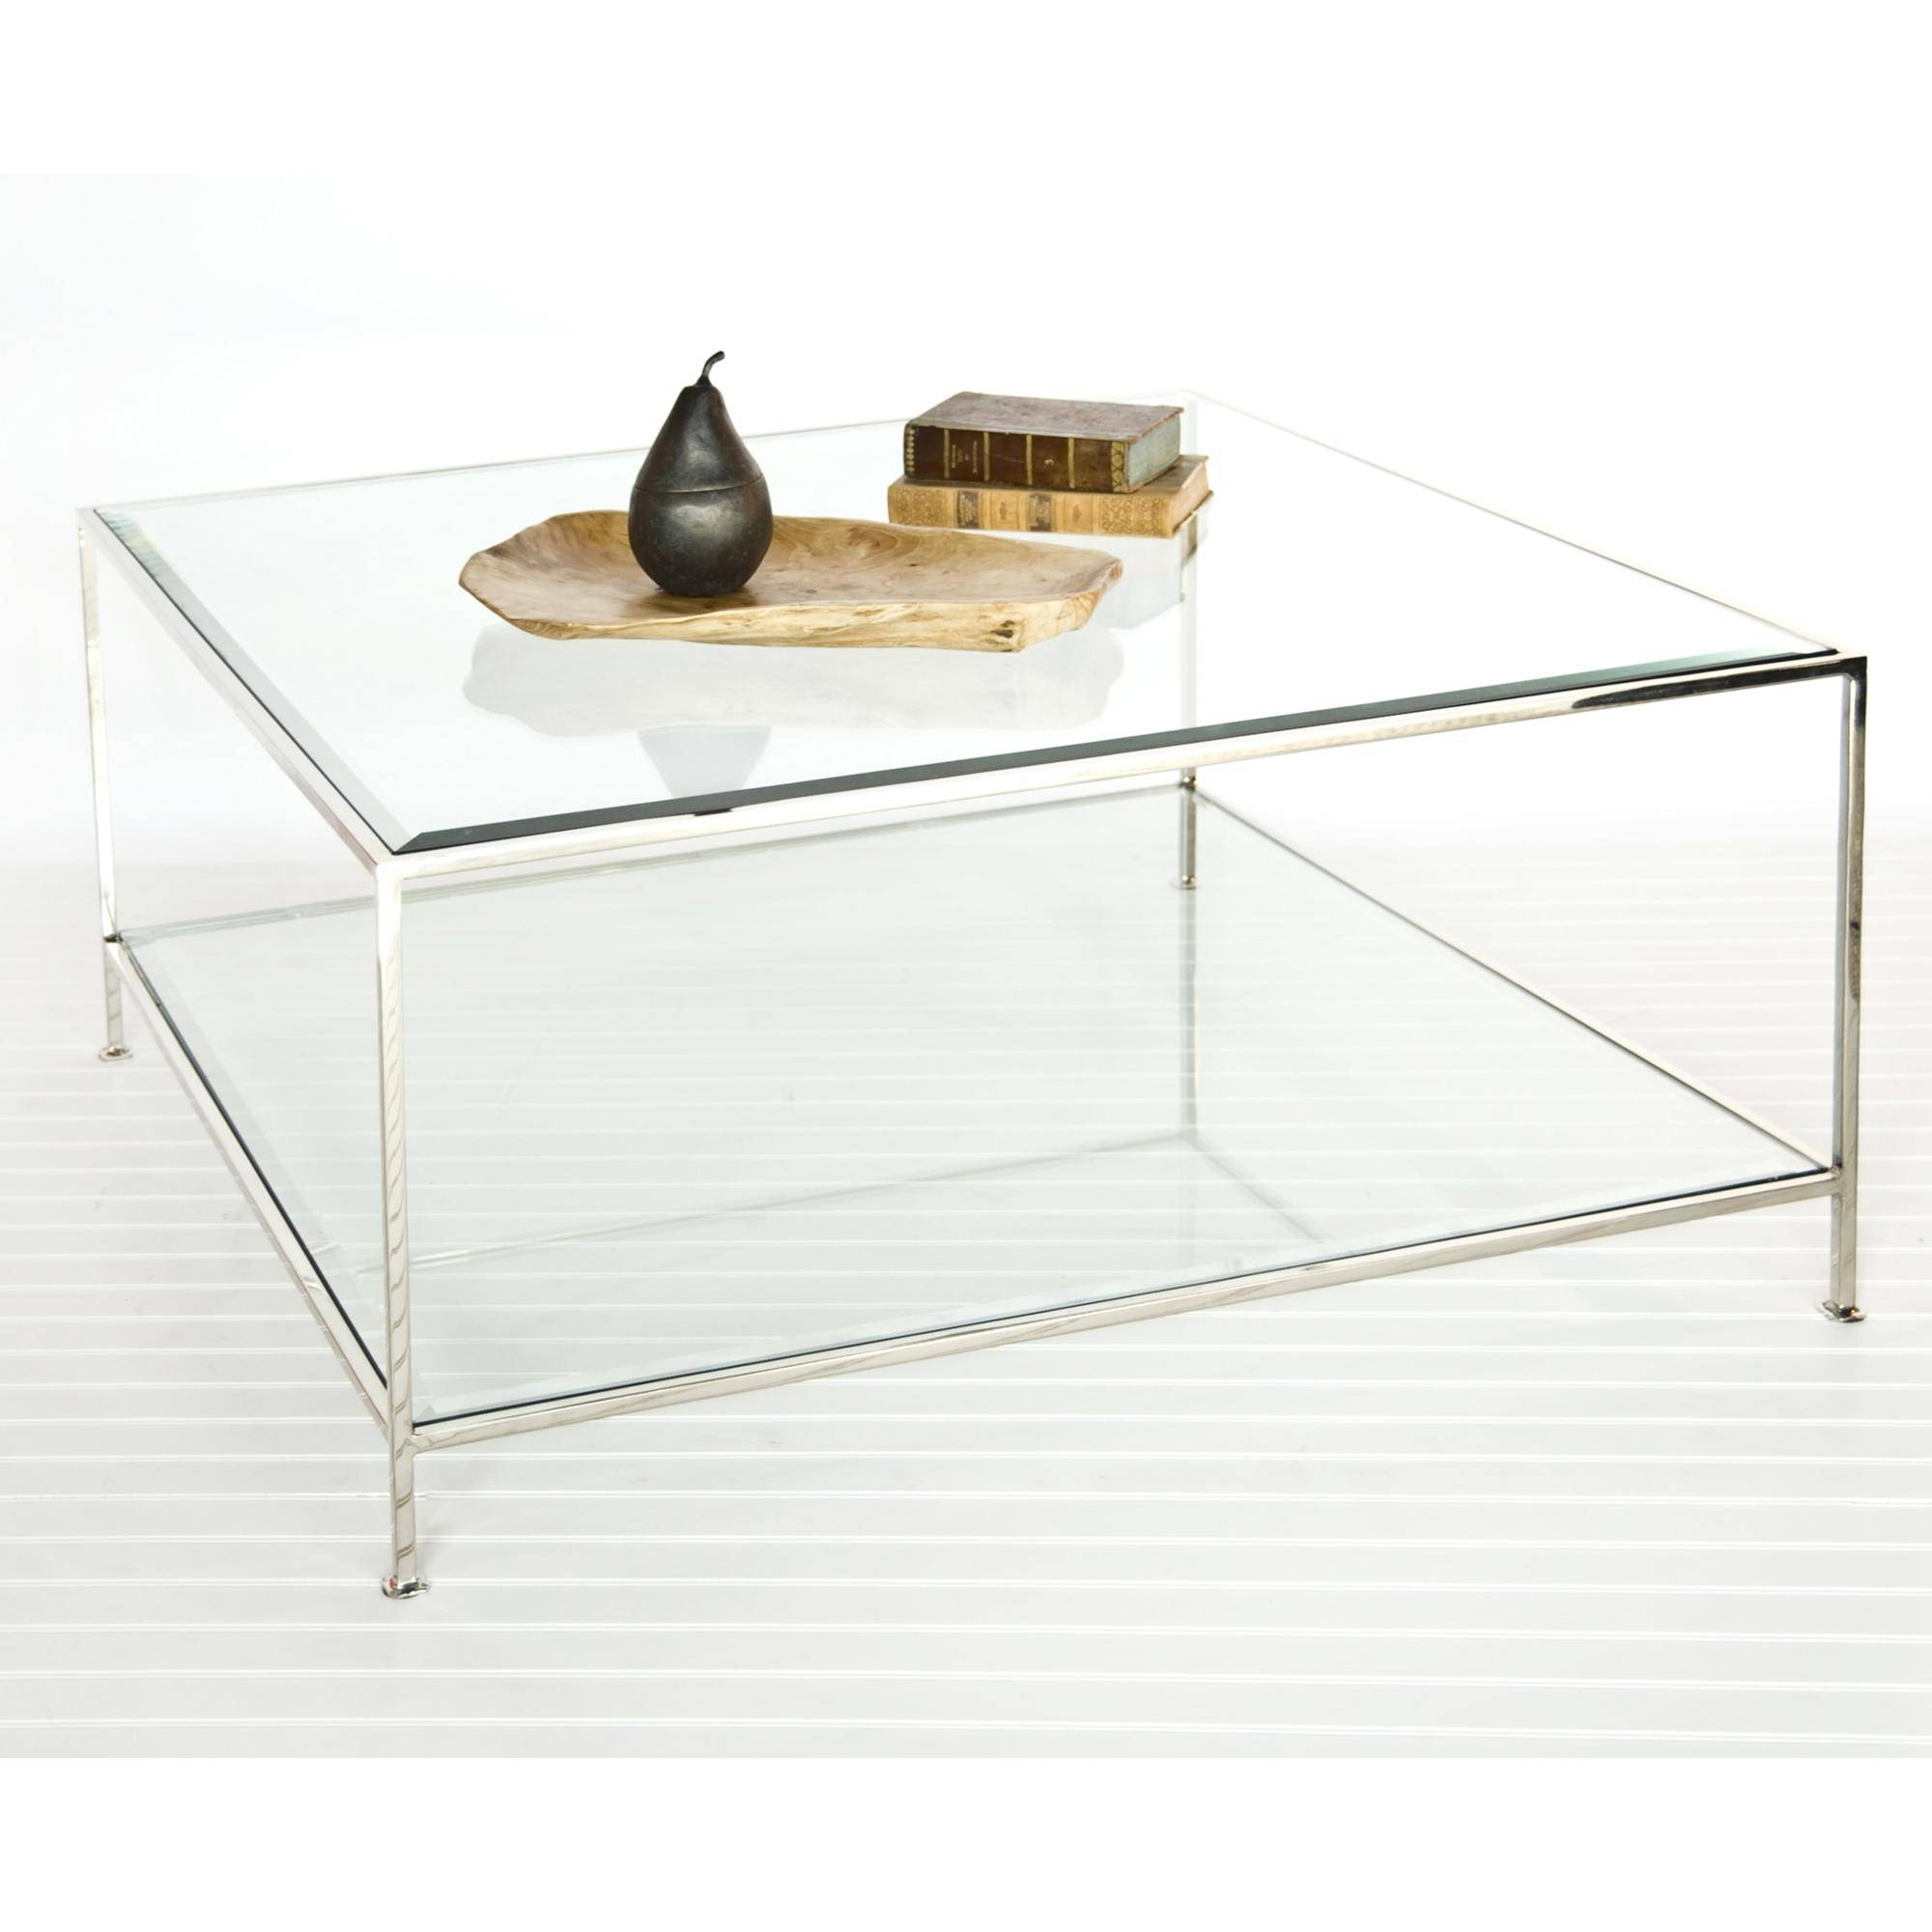 Perfect Simple White Coffee Table As Well 14 Living Room Decor with regard to Glass Coffee Tables With Shelf (Image 22 of 30)